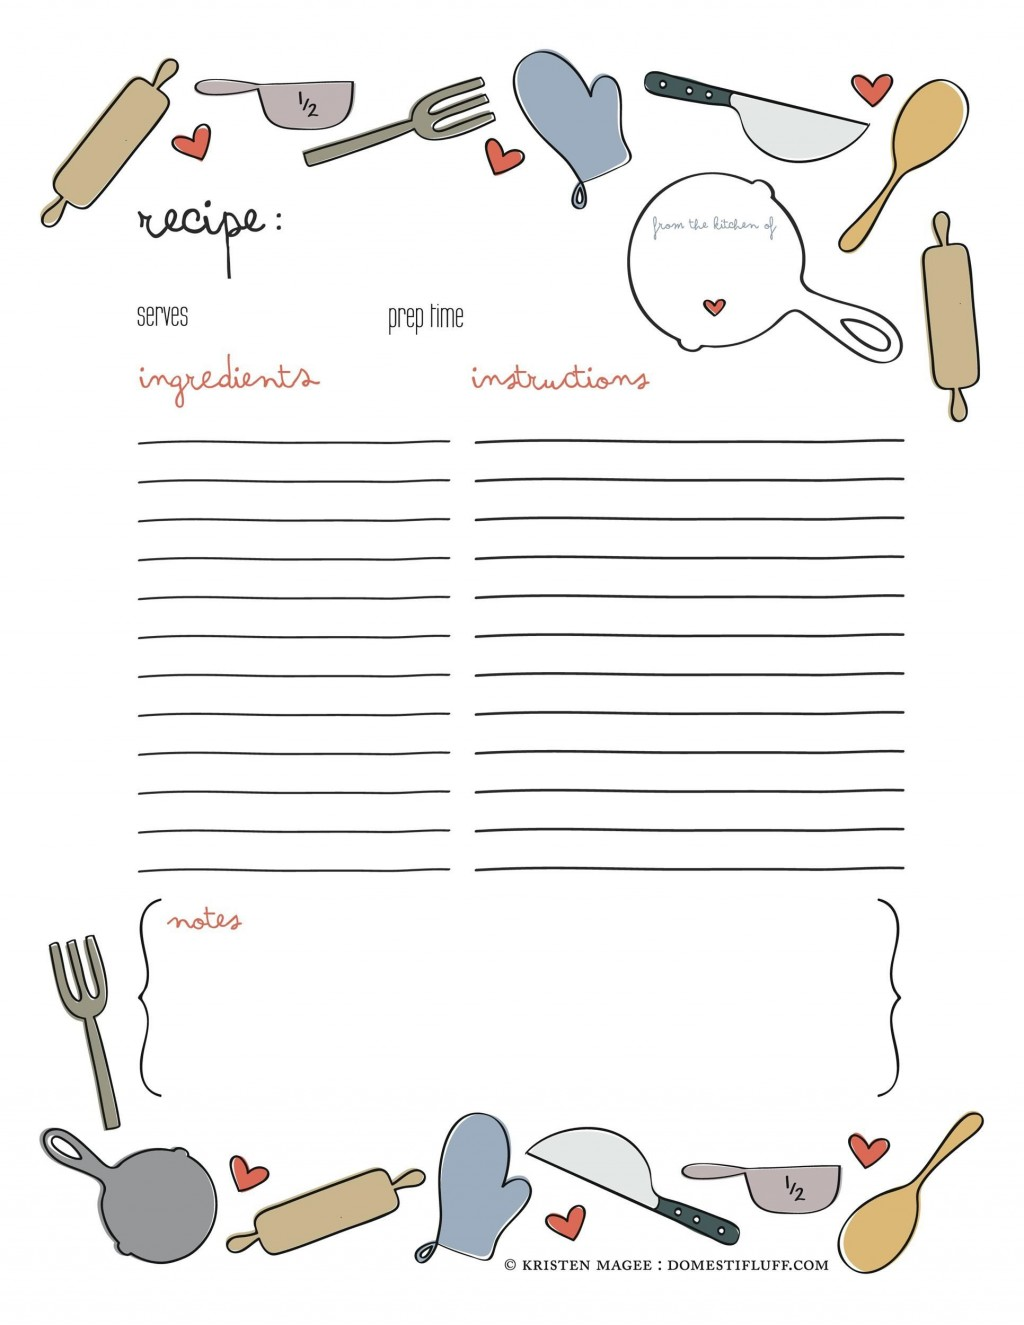 008 Remarkable Free Make Your Own Cookbook Template Download Photo Large